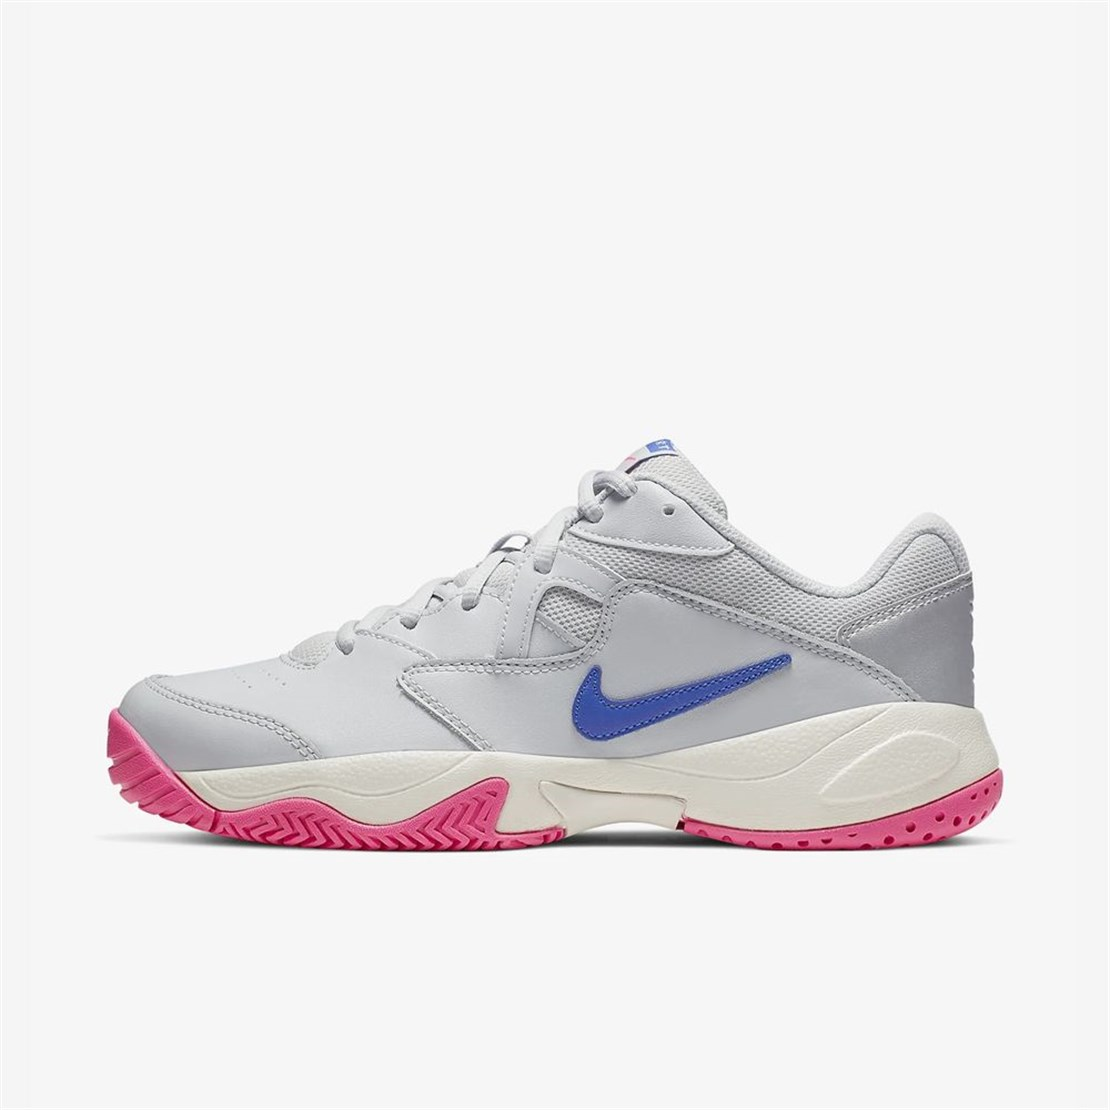 Diplomacia Leer responsabilidad  Limited Time Deals·New Deals Everyday nike court lite 2, OFF 72%,Buy!